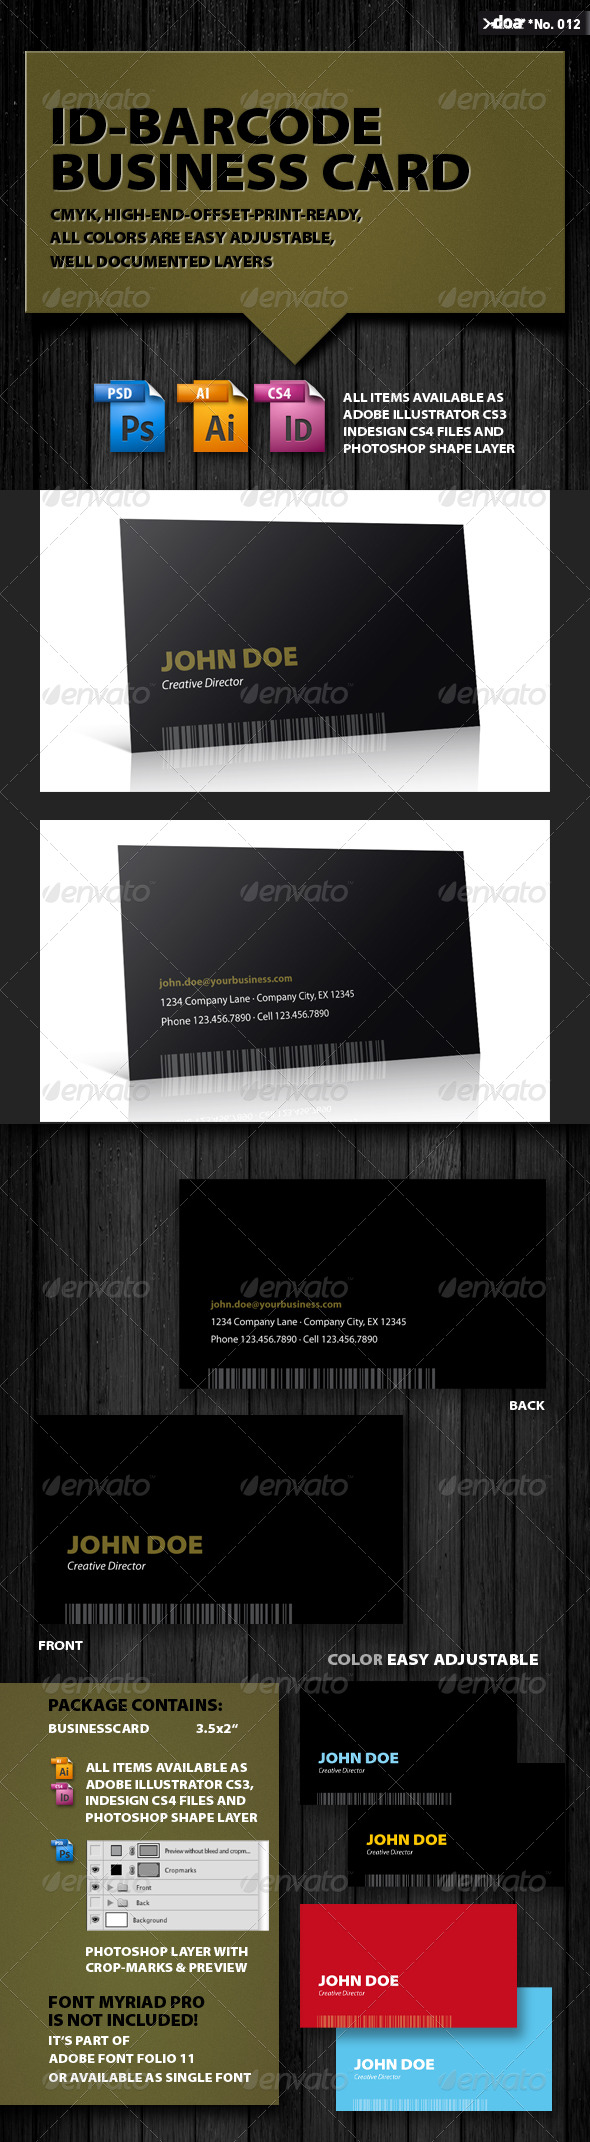 ID-Barcode Business Card - Creative Business Cards